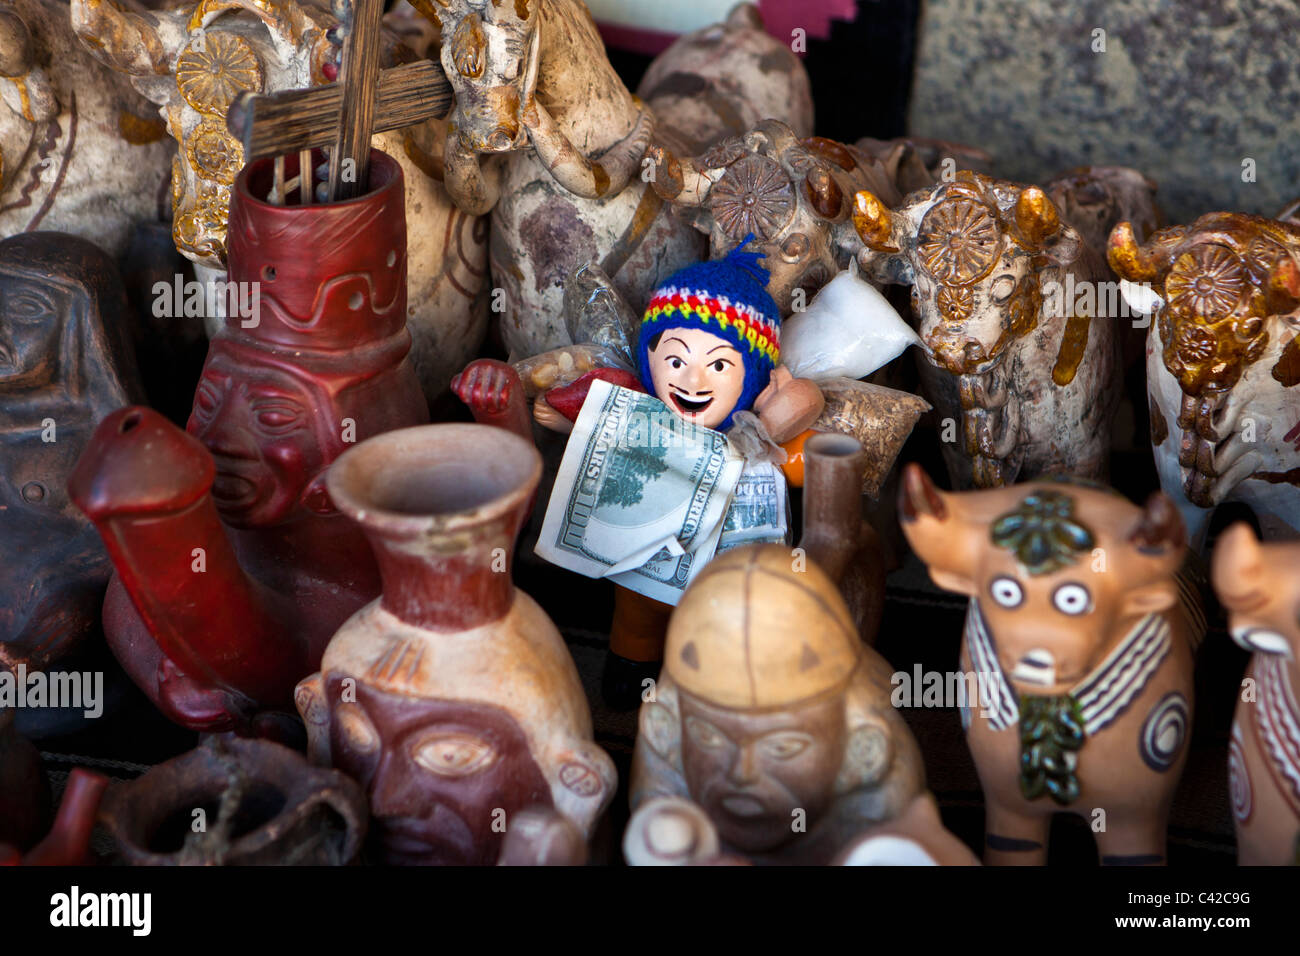 Peru, Ollantaytambo, souvenirs for sale. - Stock Image